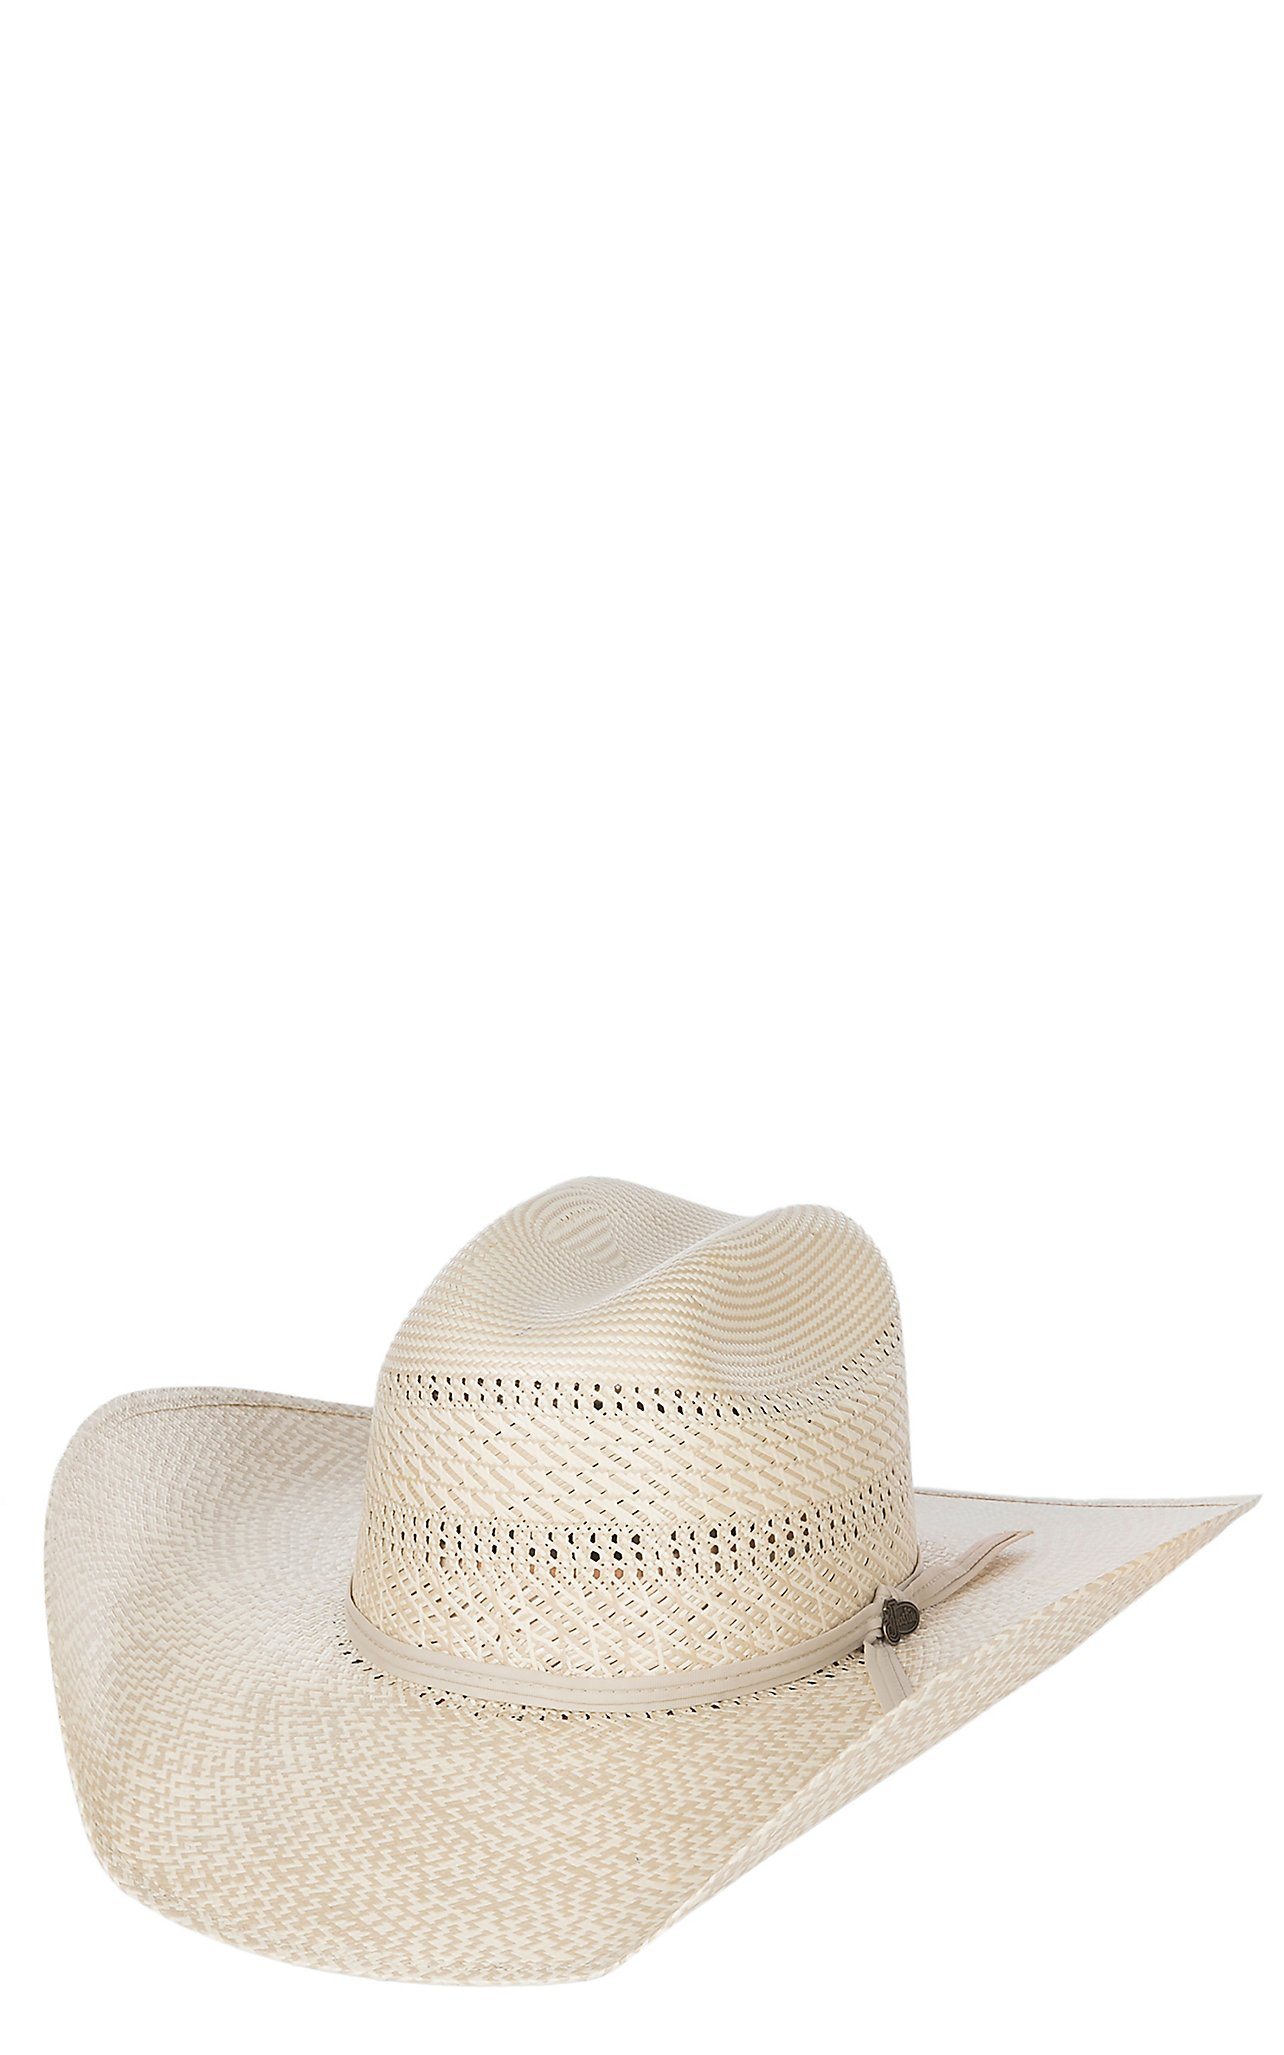 Justin Bent Rail Two Tone Natural and Tan Vented Cattlemans Crown Straw  Cowboy Hat  491f386c731